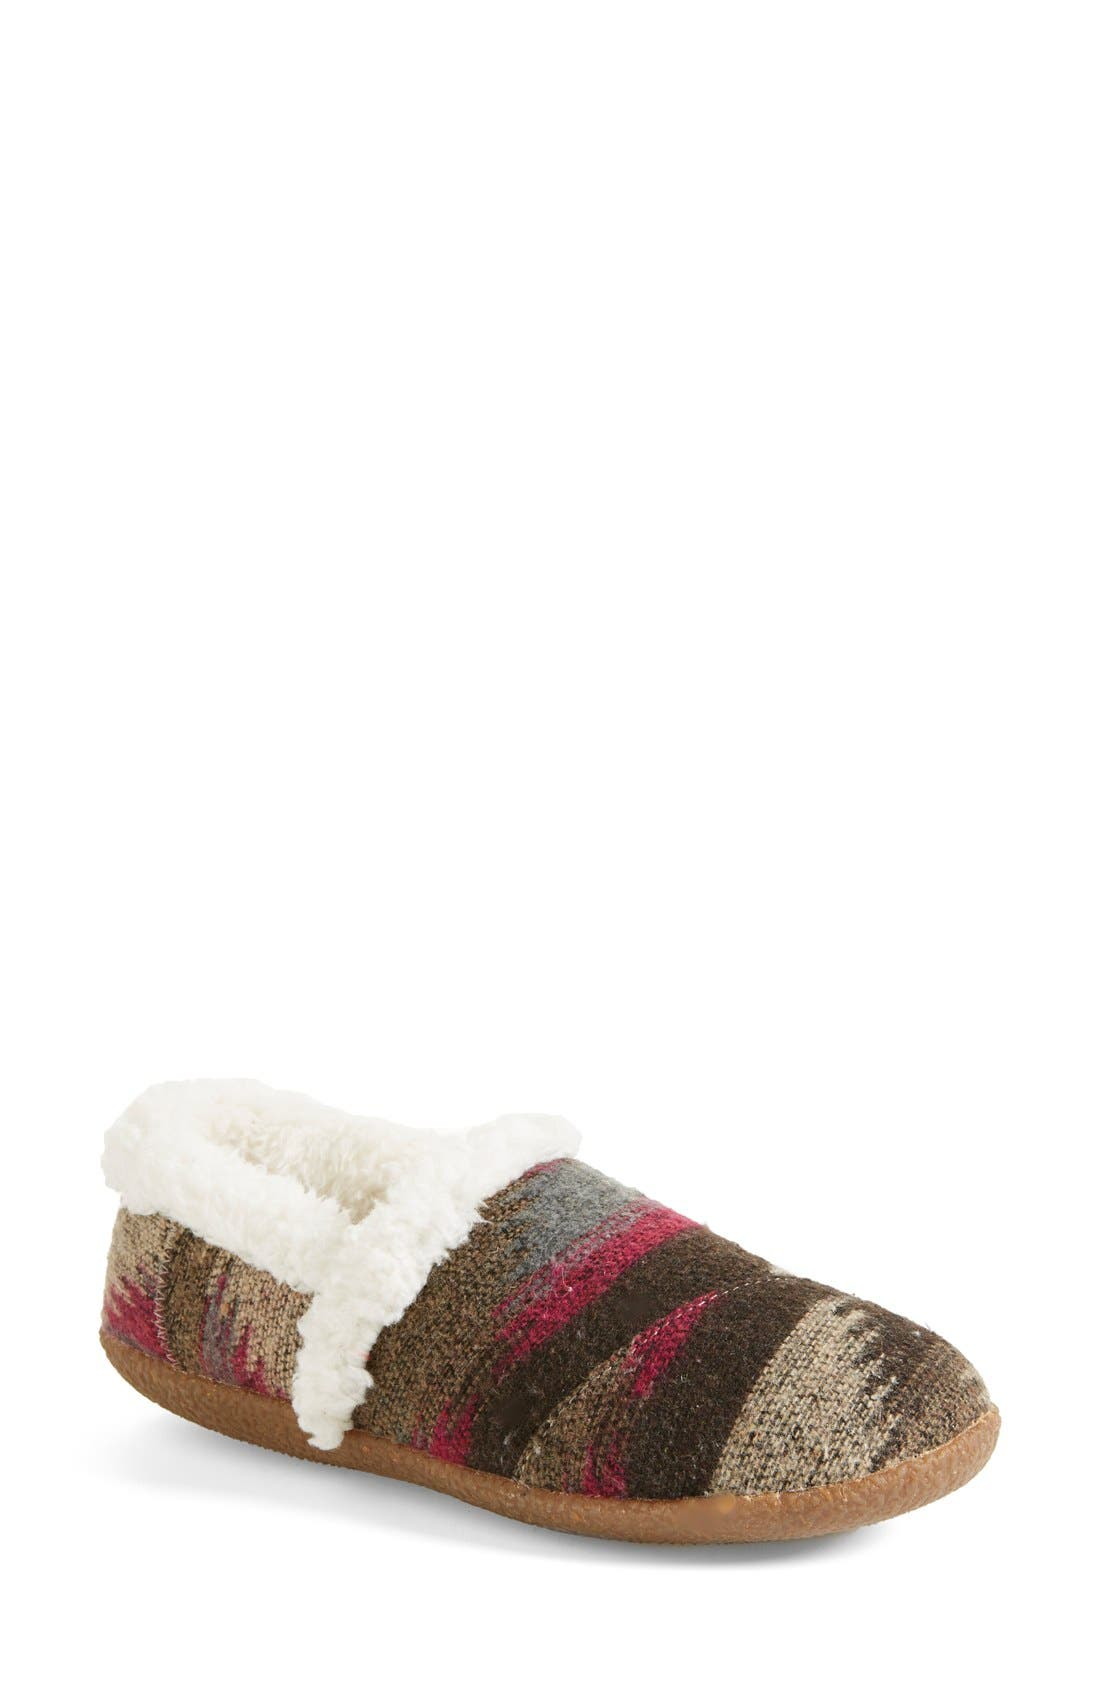 Alternate Image 1 Selected - TOMS 'Classic - Wool' Slippers (Women)